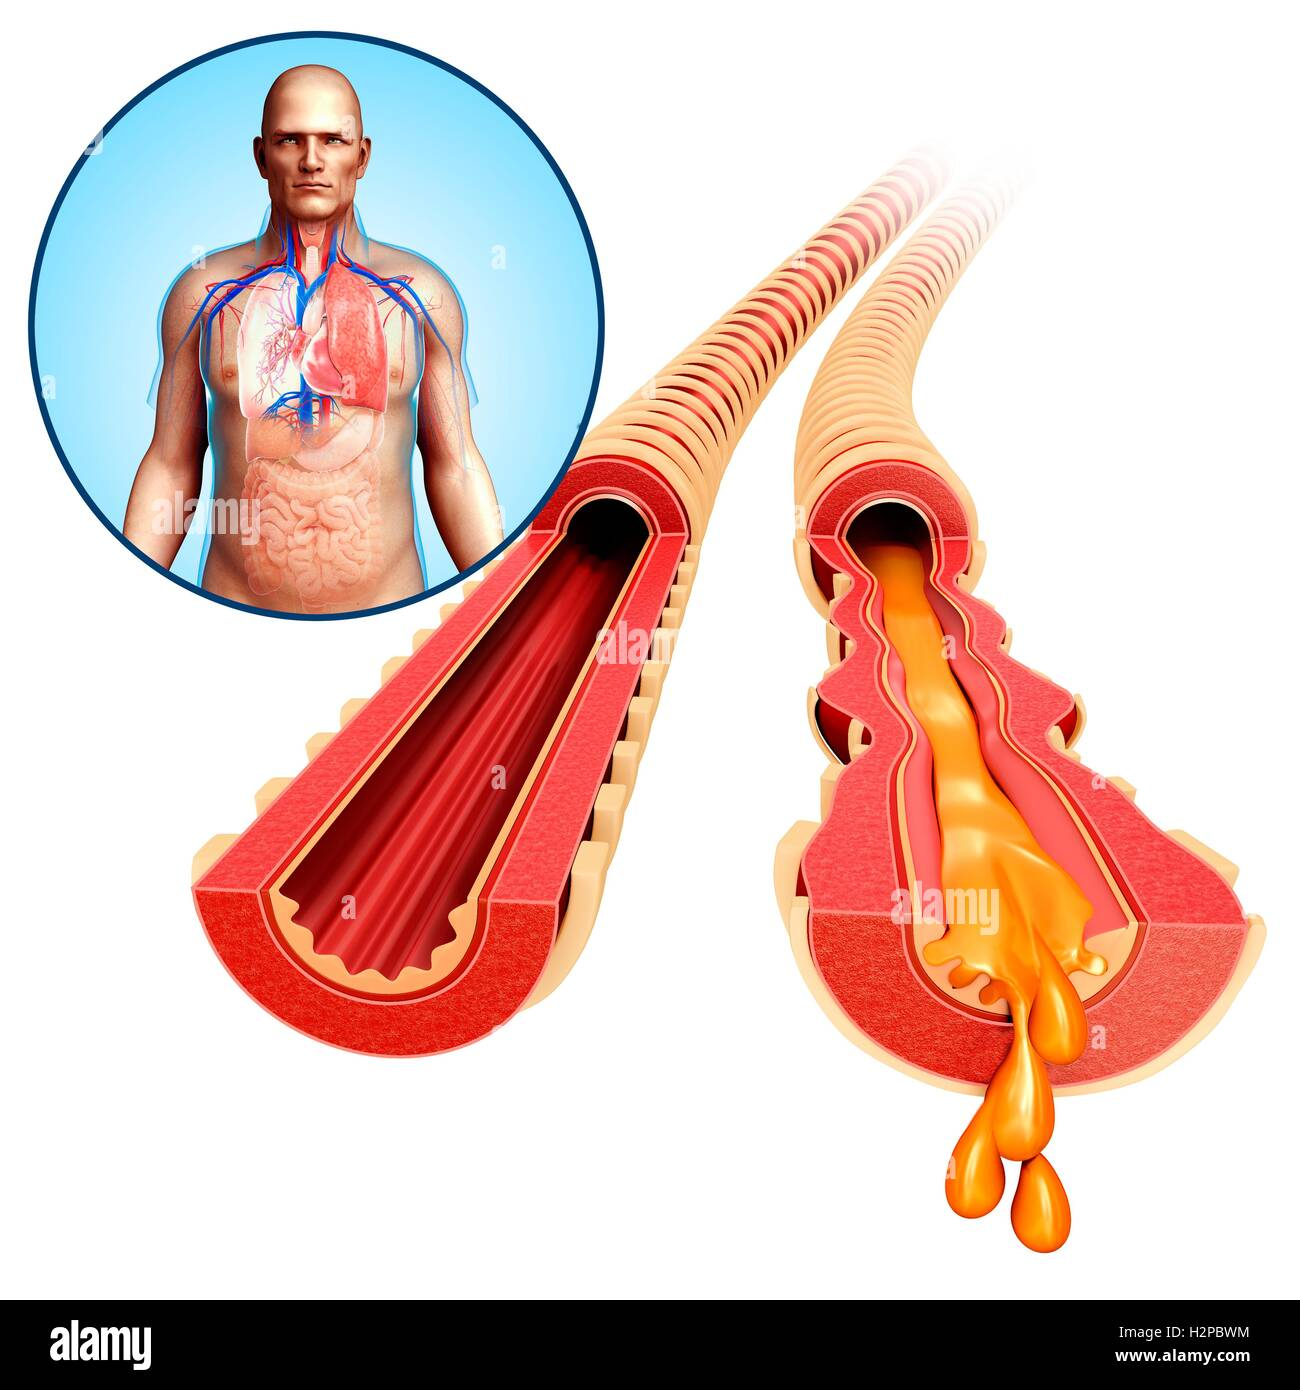 Illustration of a man's infected bronchi. - Stock Image